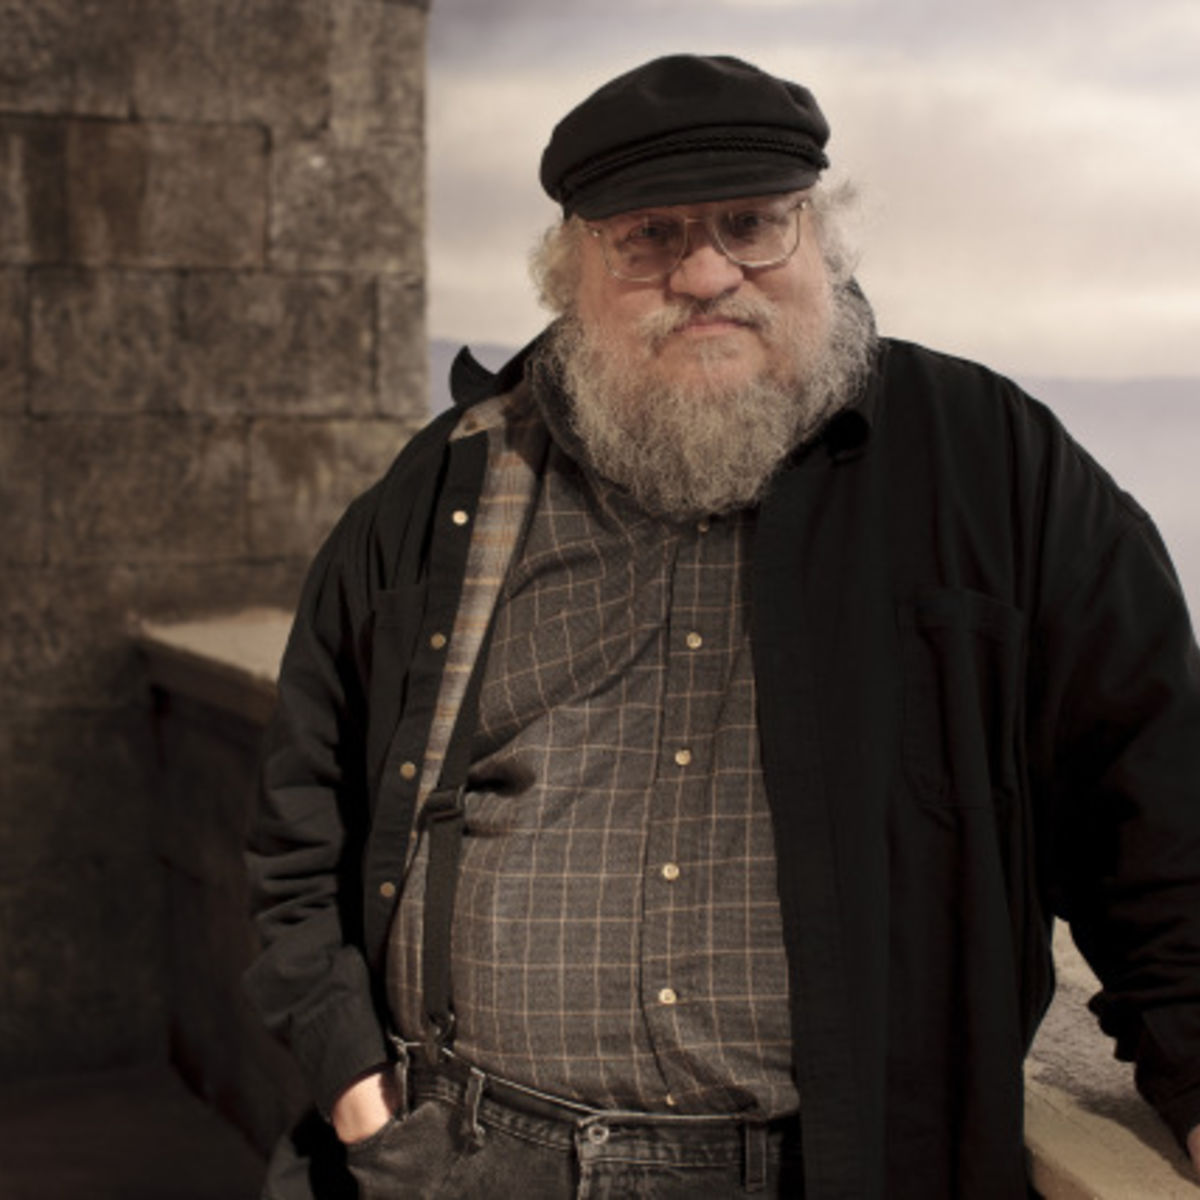 George R.R. Martin Says Game of Thrones Could Have Gone On for 13 Seasons